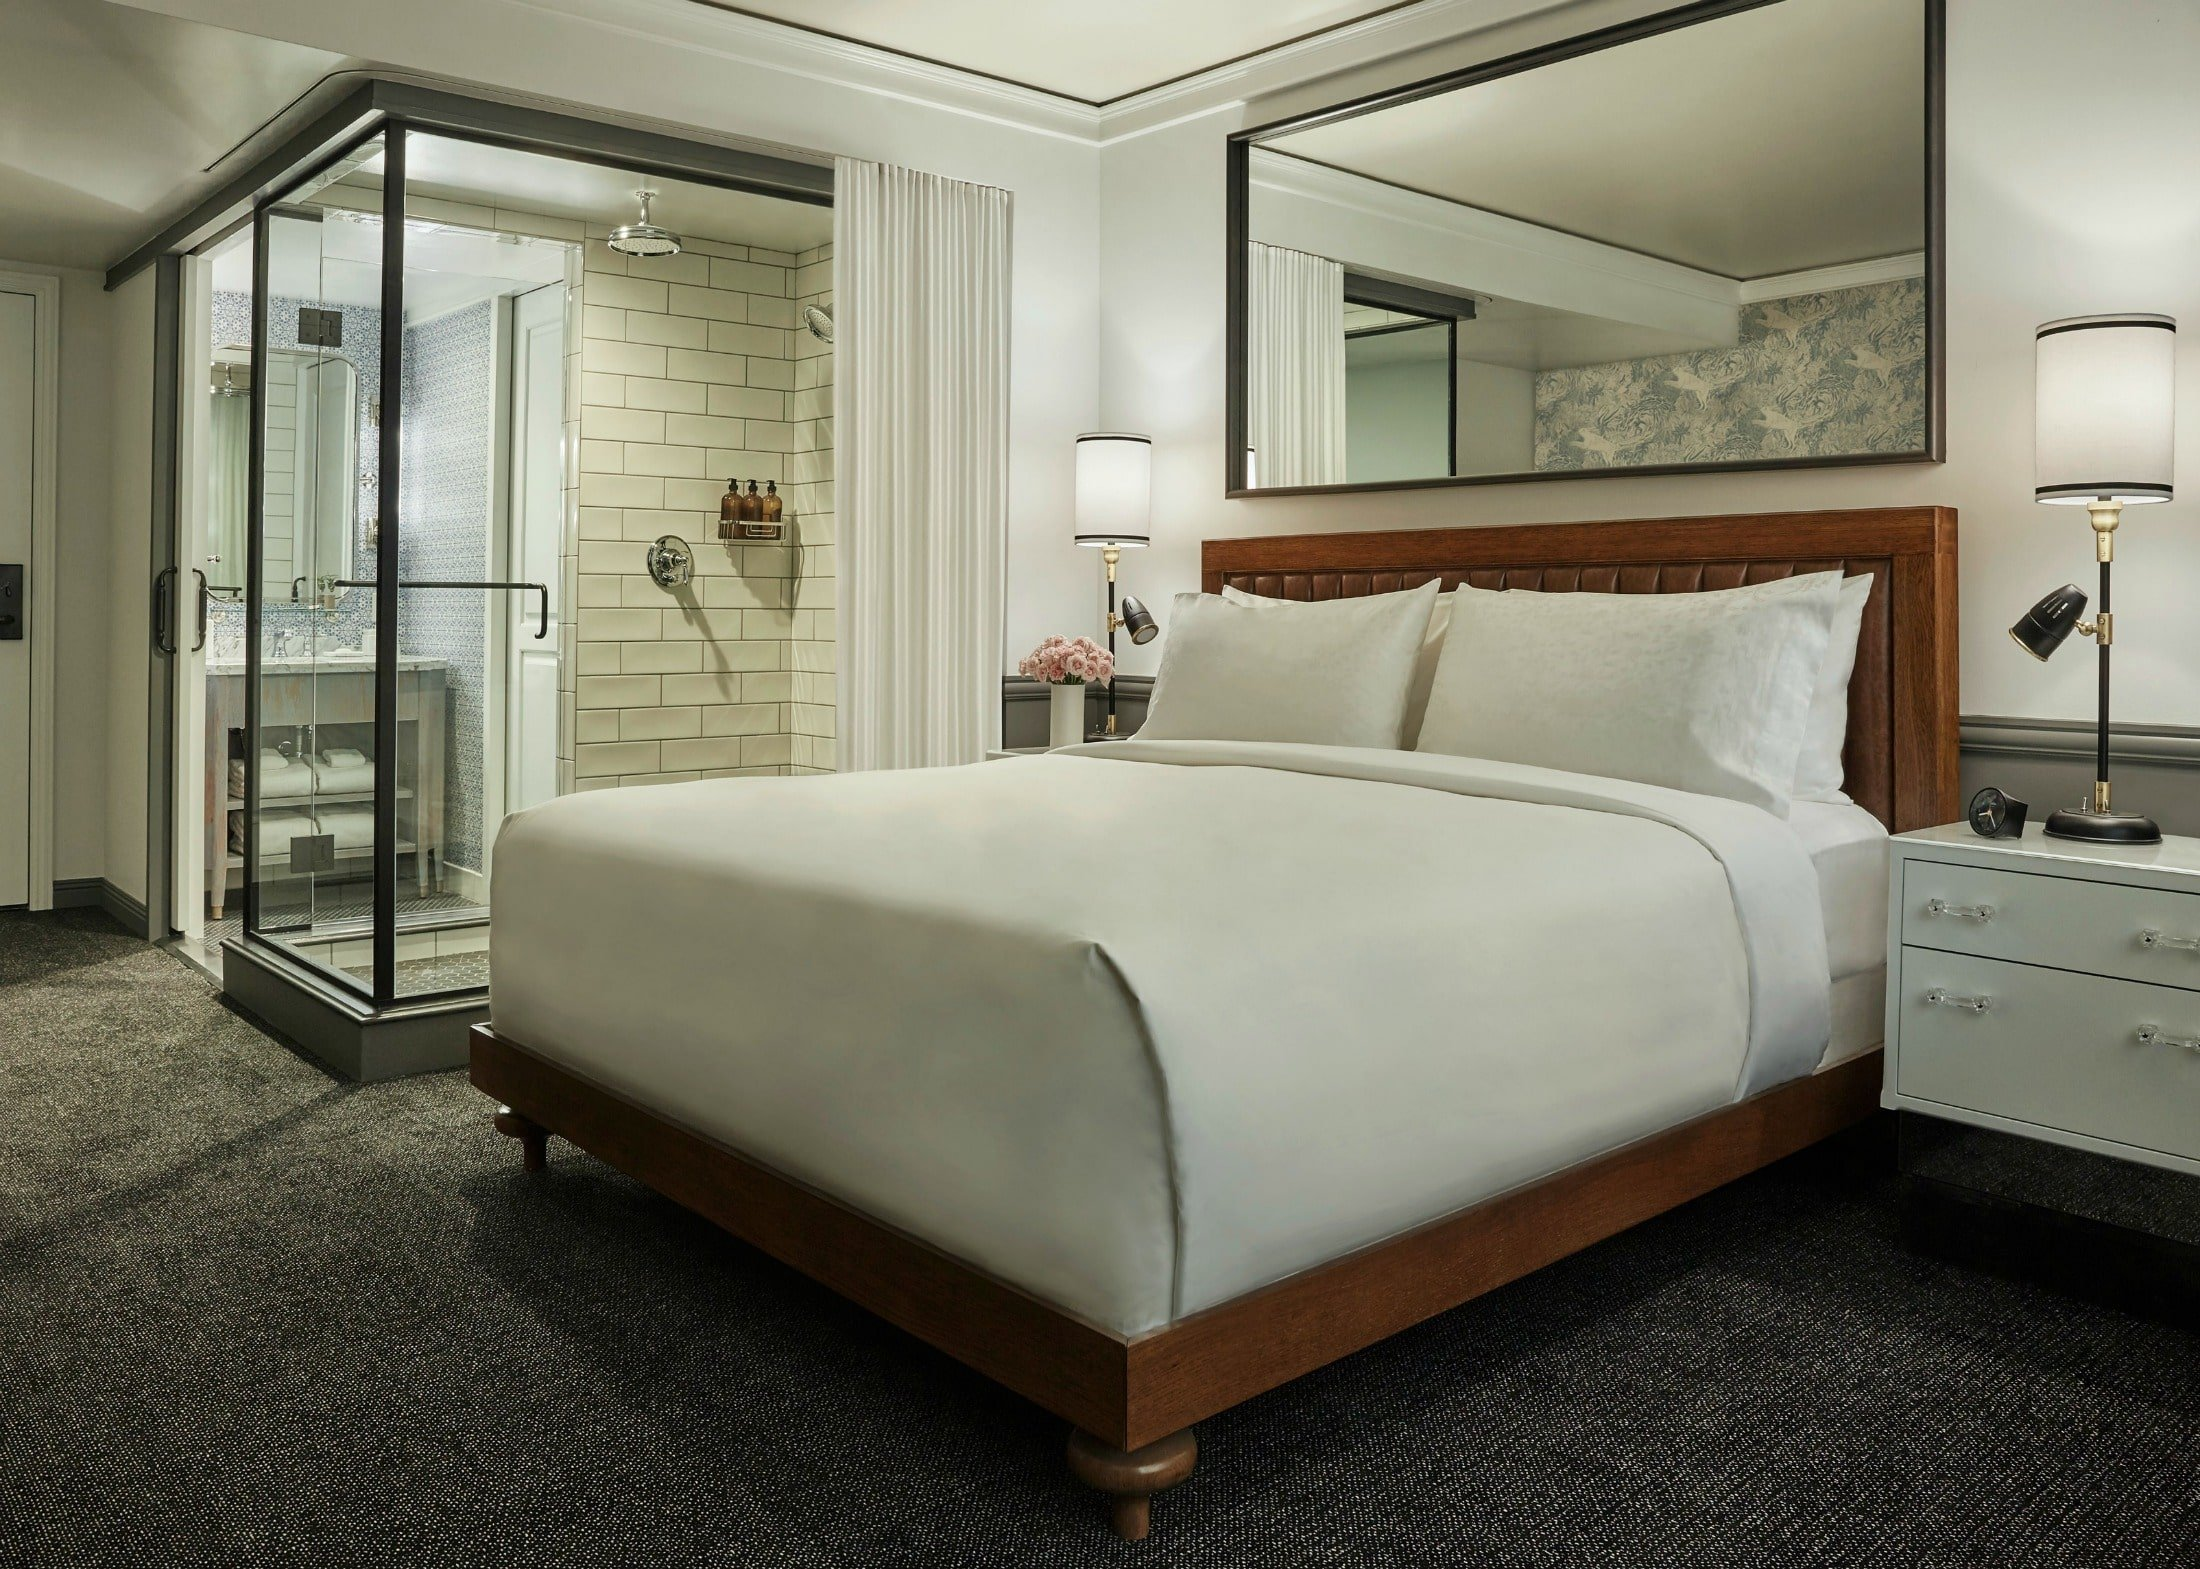 Connecting rooms at Pendry San Diego for large families